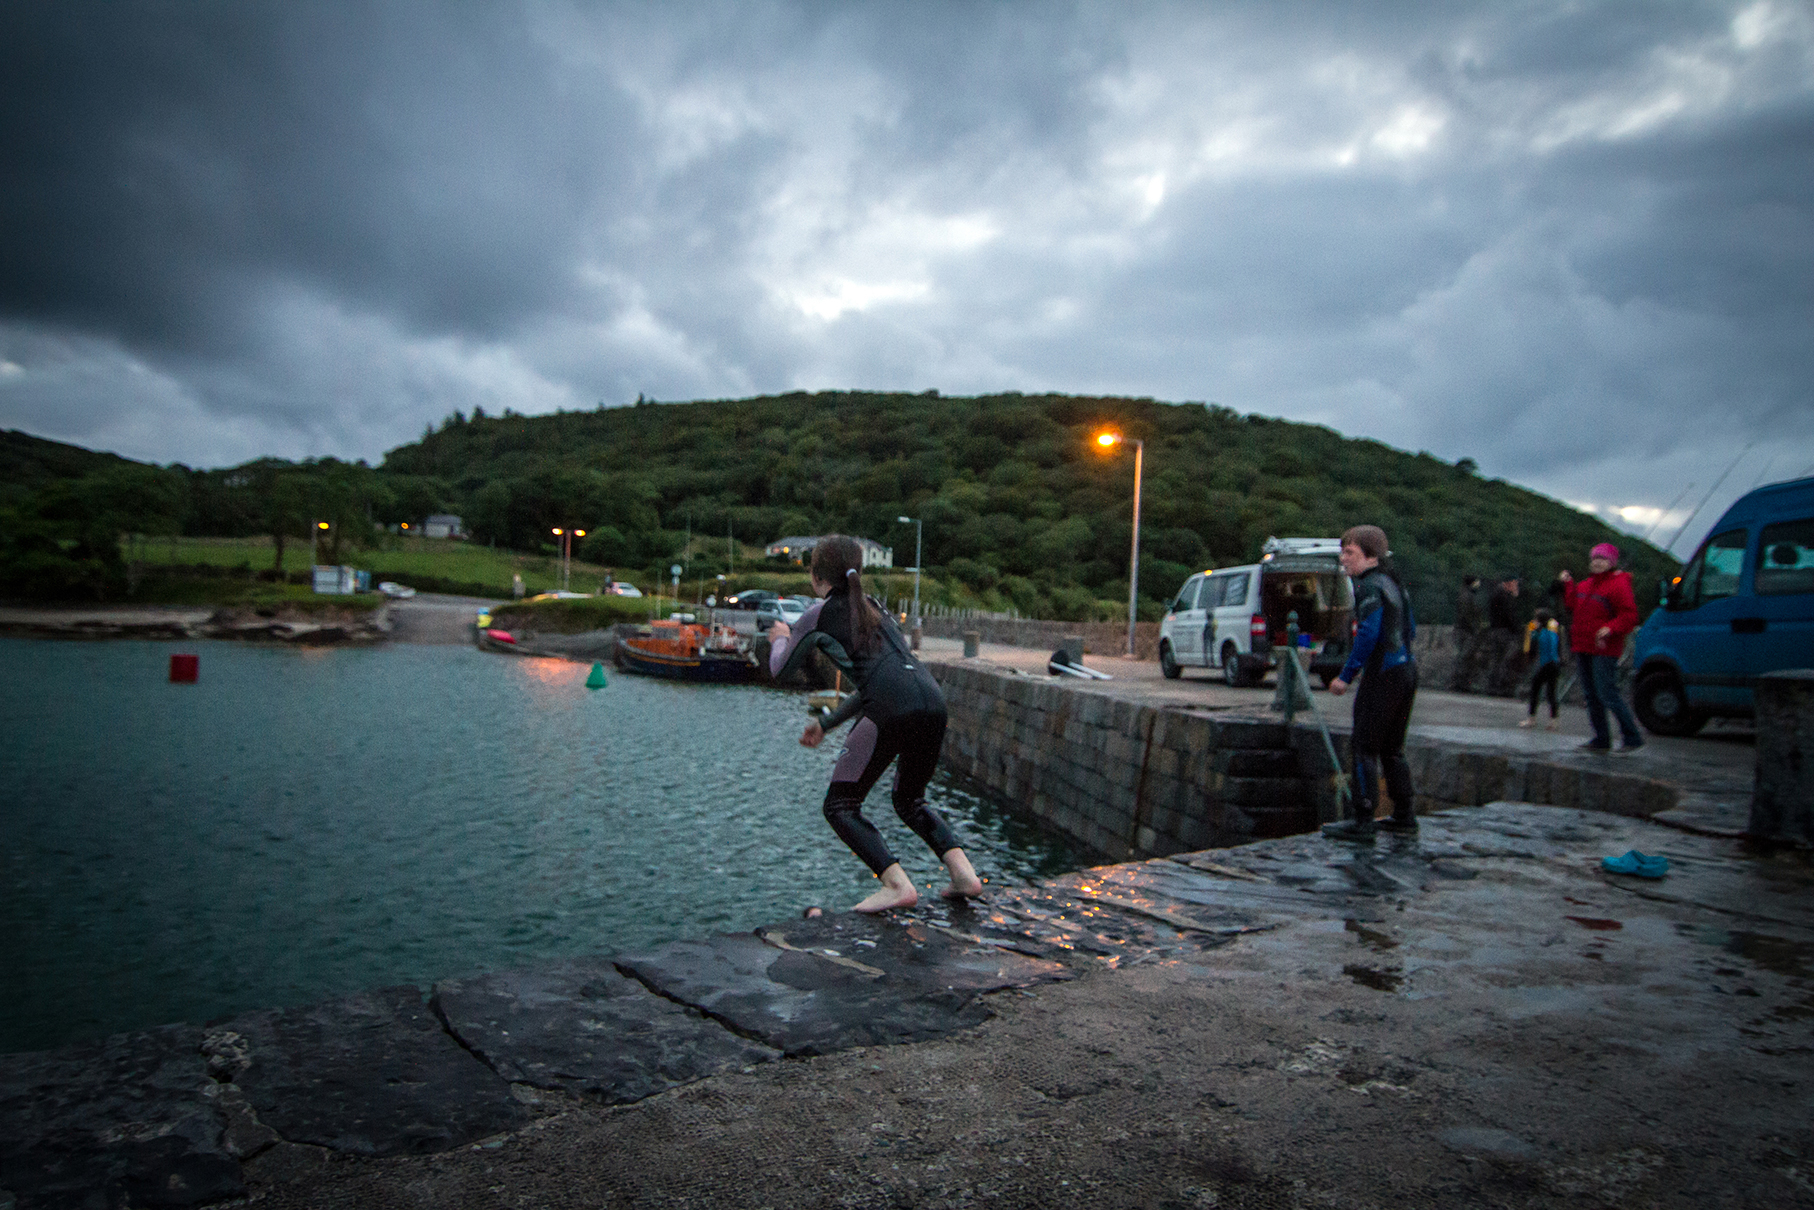 Jumping off the pier at Oldhead County Mayo